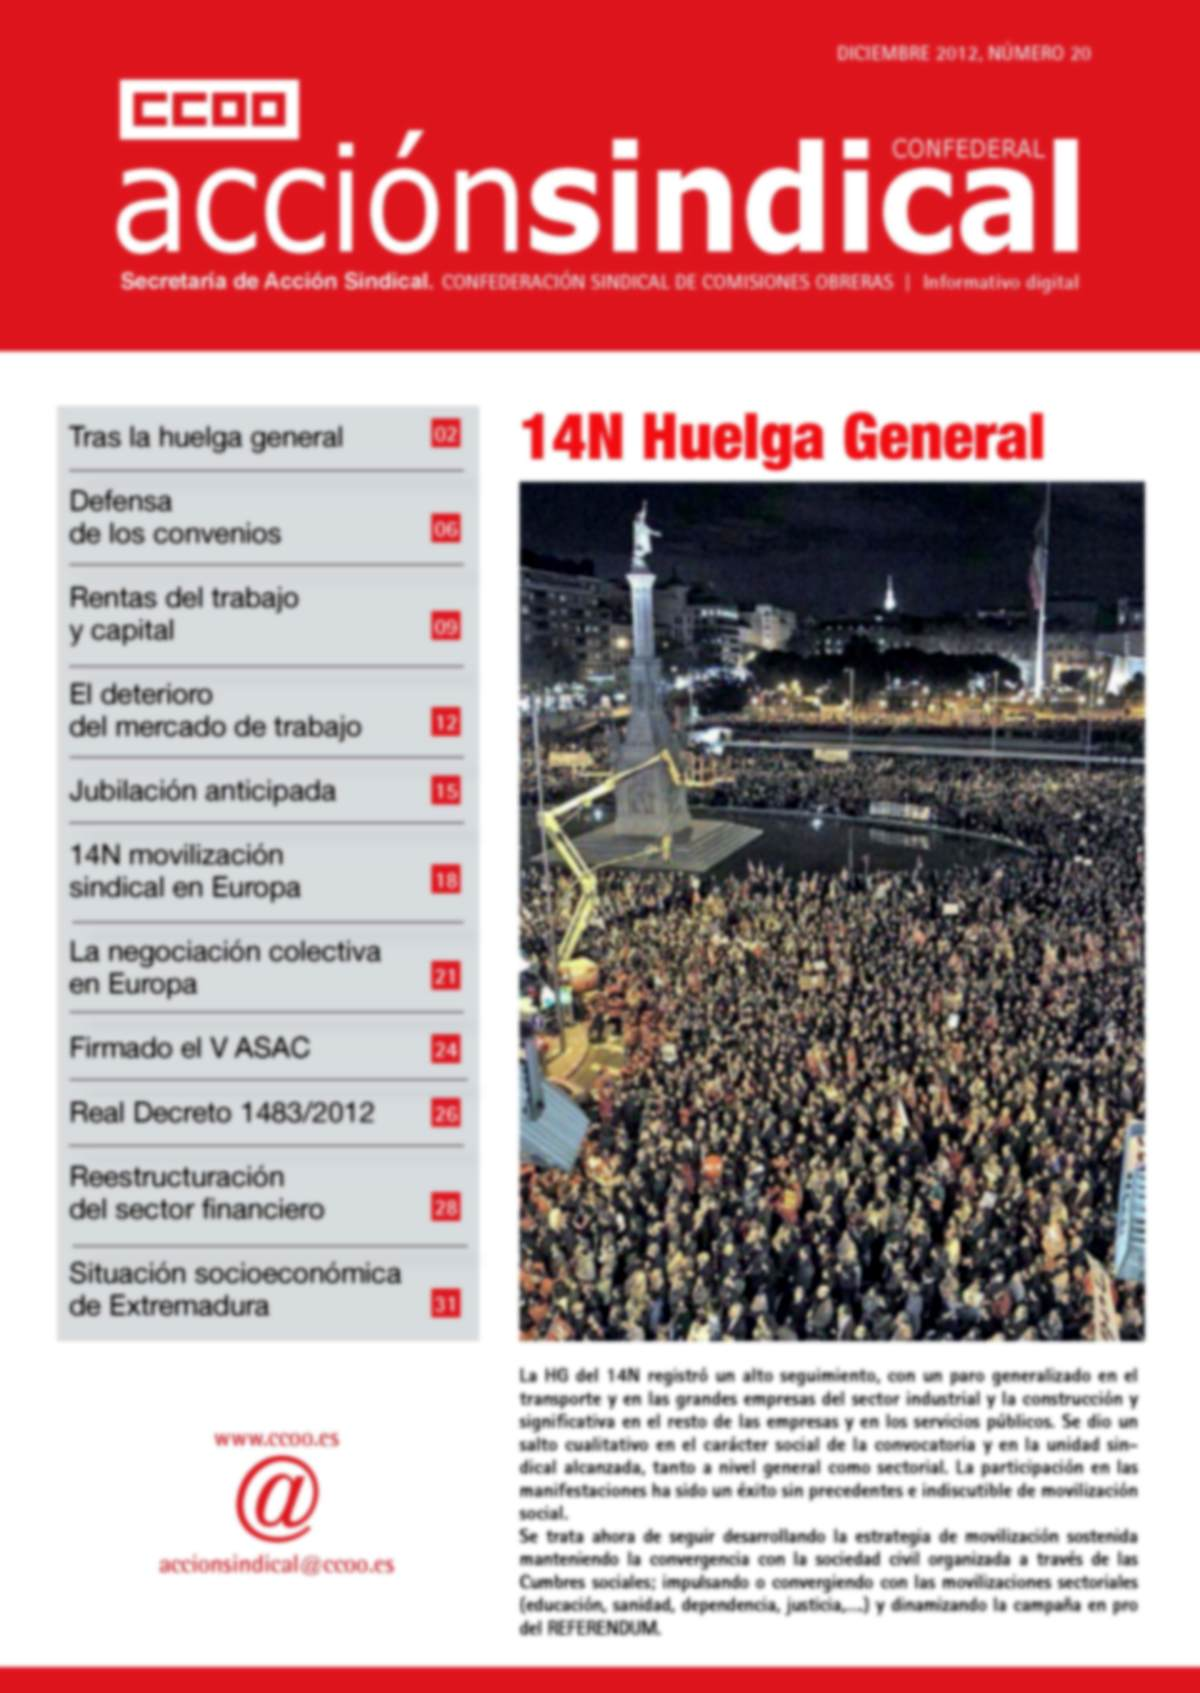 Informativo Digital Acción Sindical Confederal, nº 20